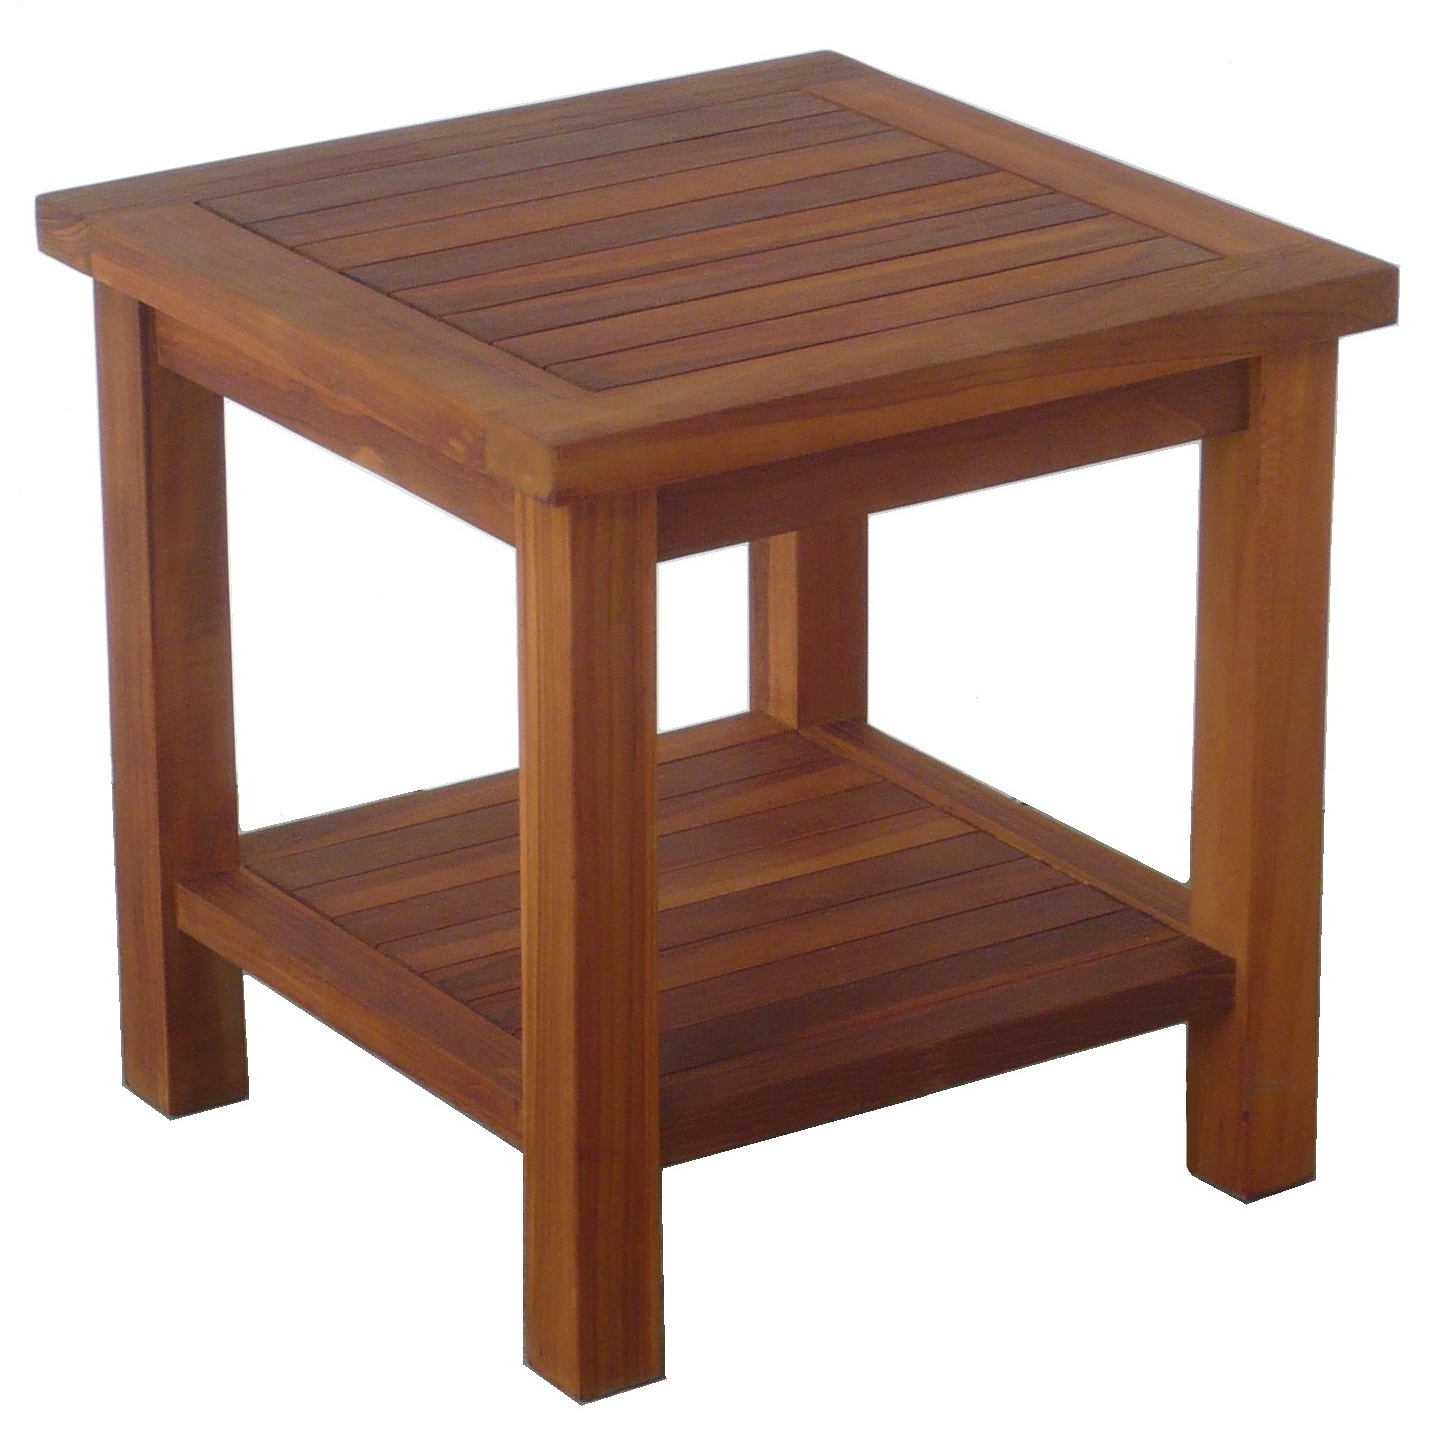 Side Coffee Table. TEAK WOOD Square side Coffee Table – Natural wood colour (W45 x D45 x H45cm)